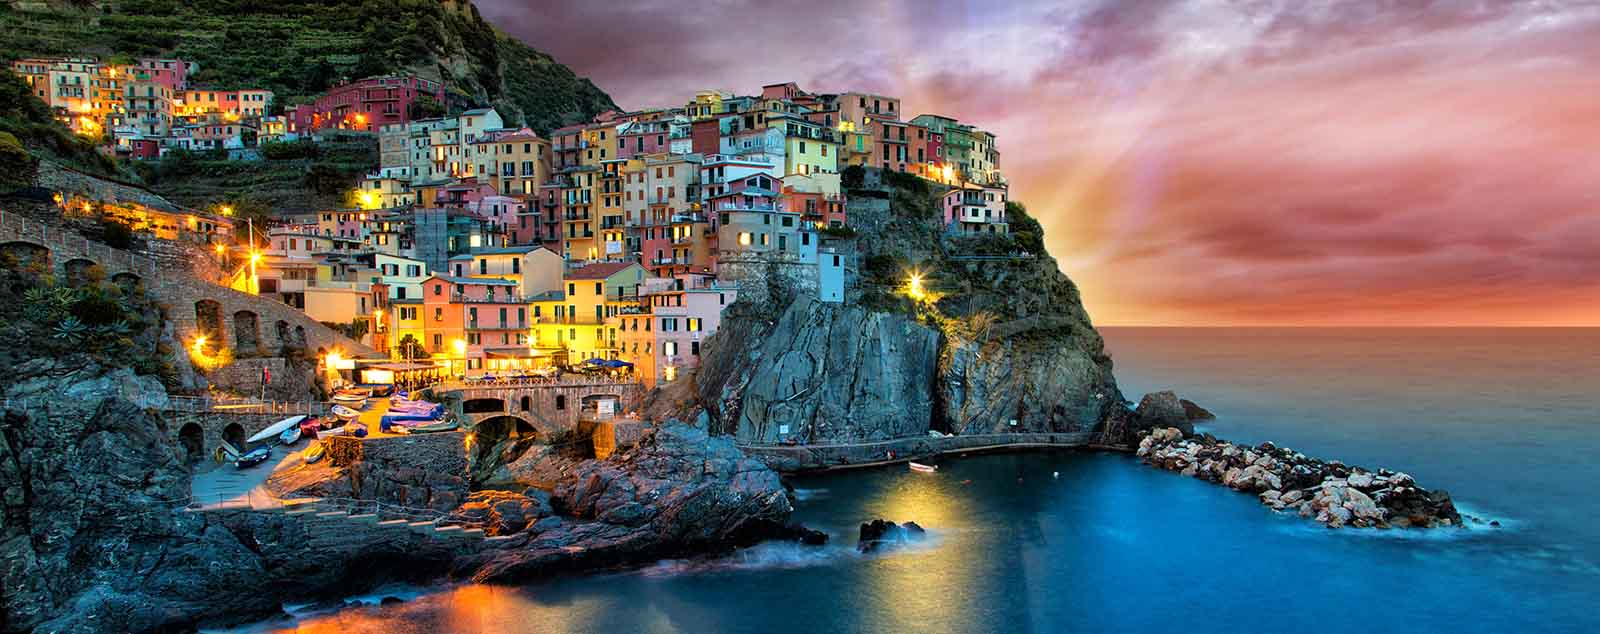 Pastel coloured houses clinging to jagged rocky cliffs, illuminated in the dusk by street lights